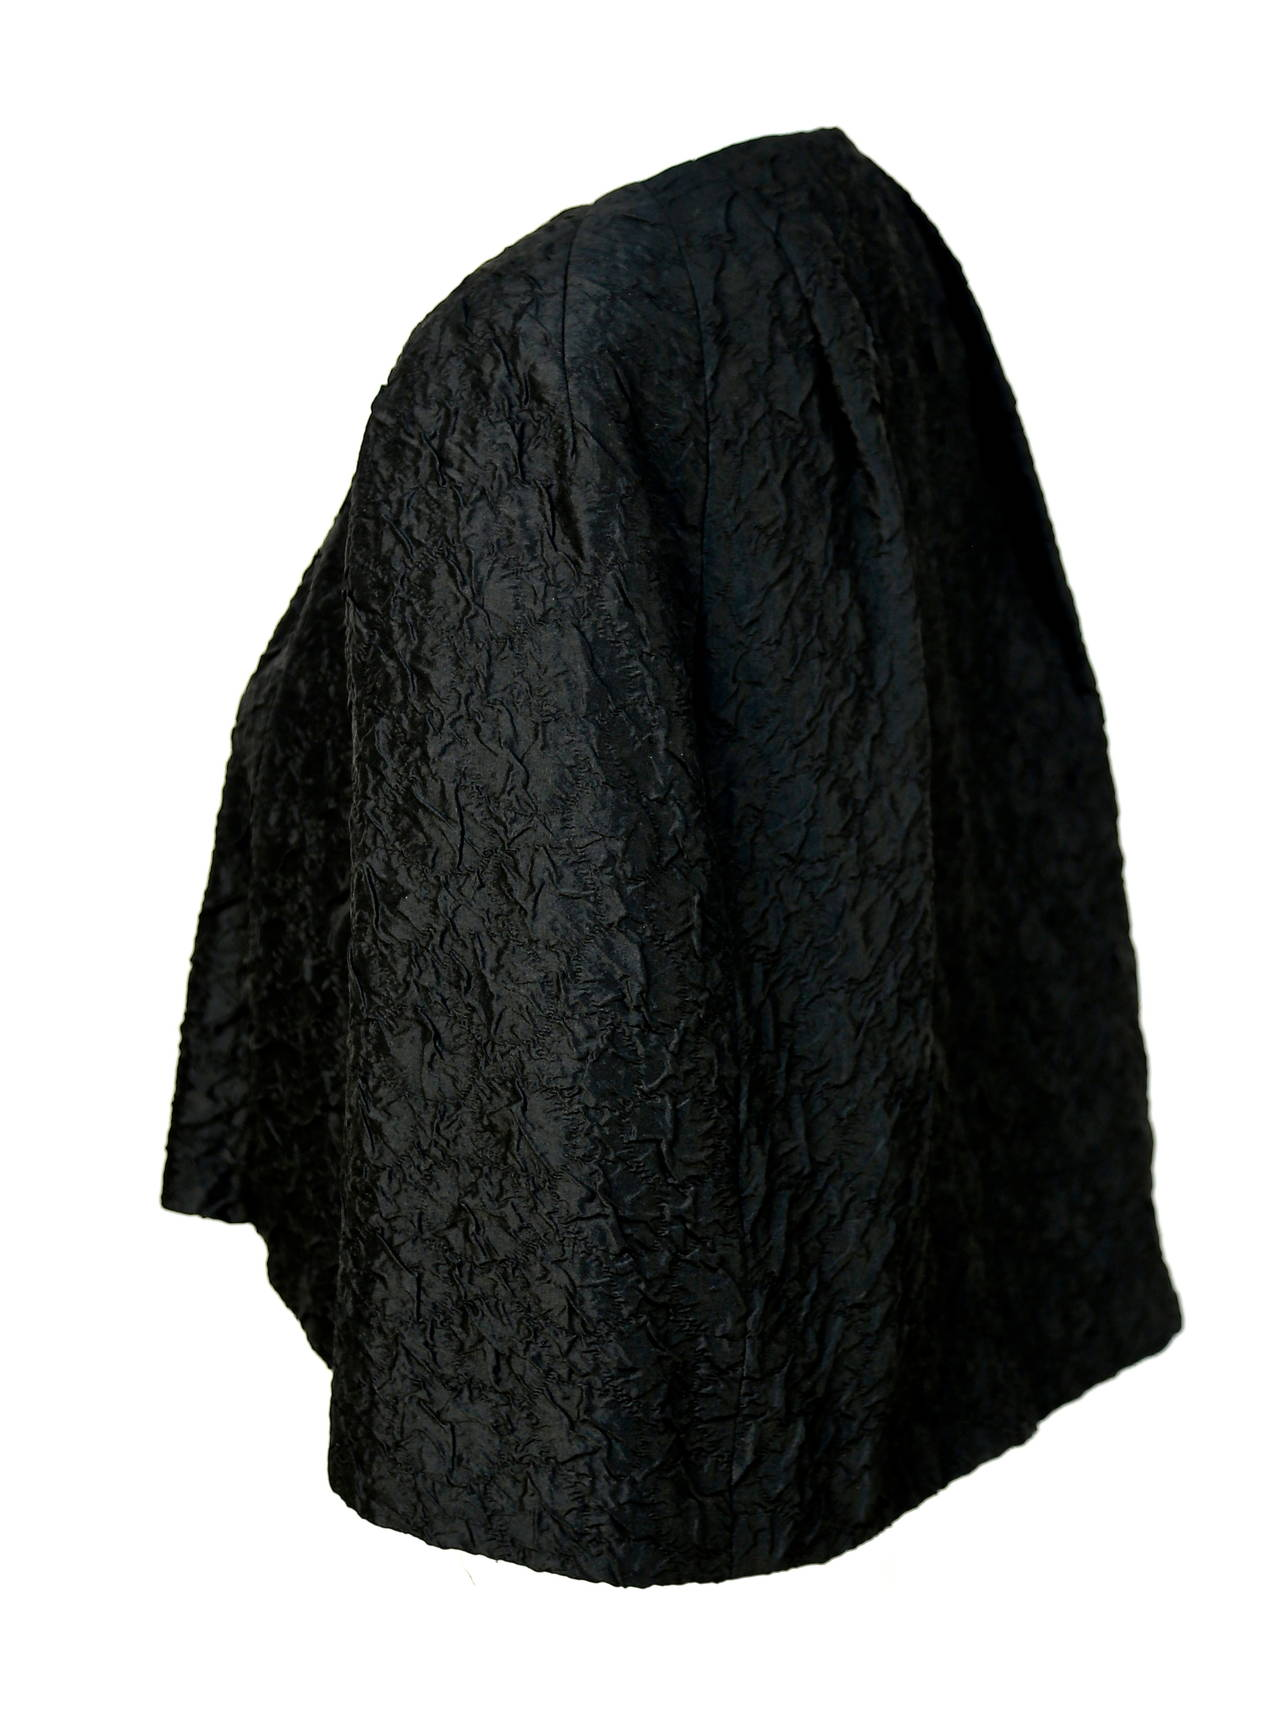 "Very rare jet black haute couture silk capelet from Cristobal Balenciaga for Eisa dating to the 1960's. Fits a size small or medium best. Approximate measurements: length in front 15.75"" and length in back 20"". Made in Spain. Single hook/eye"